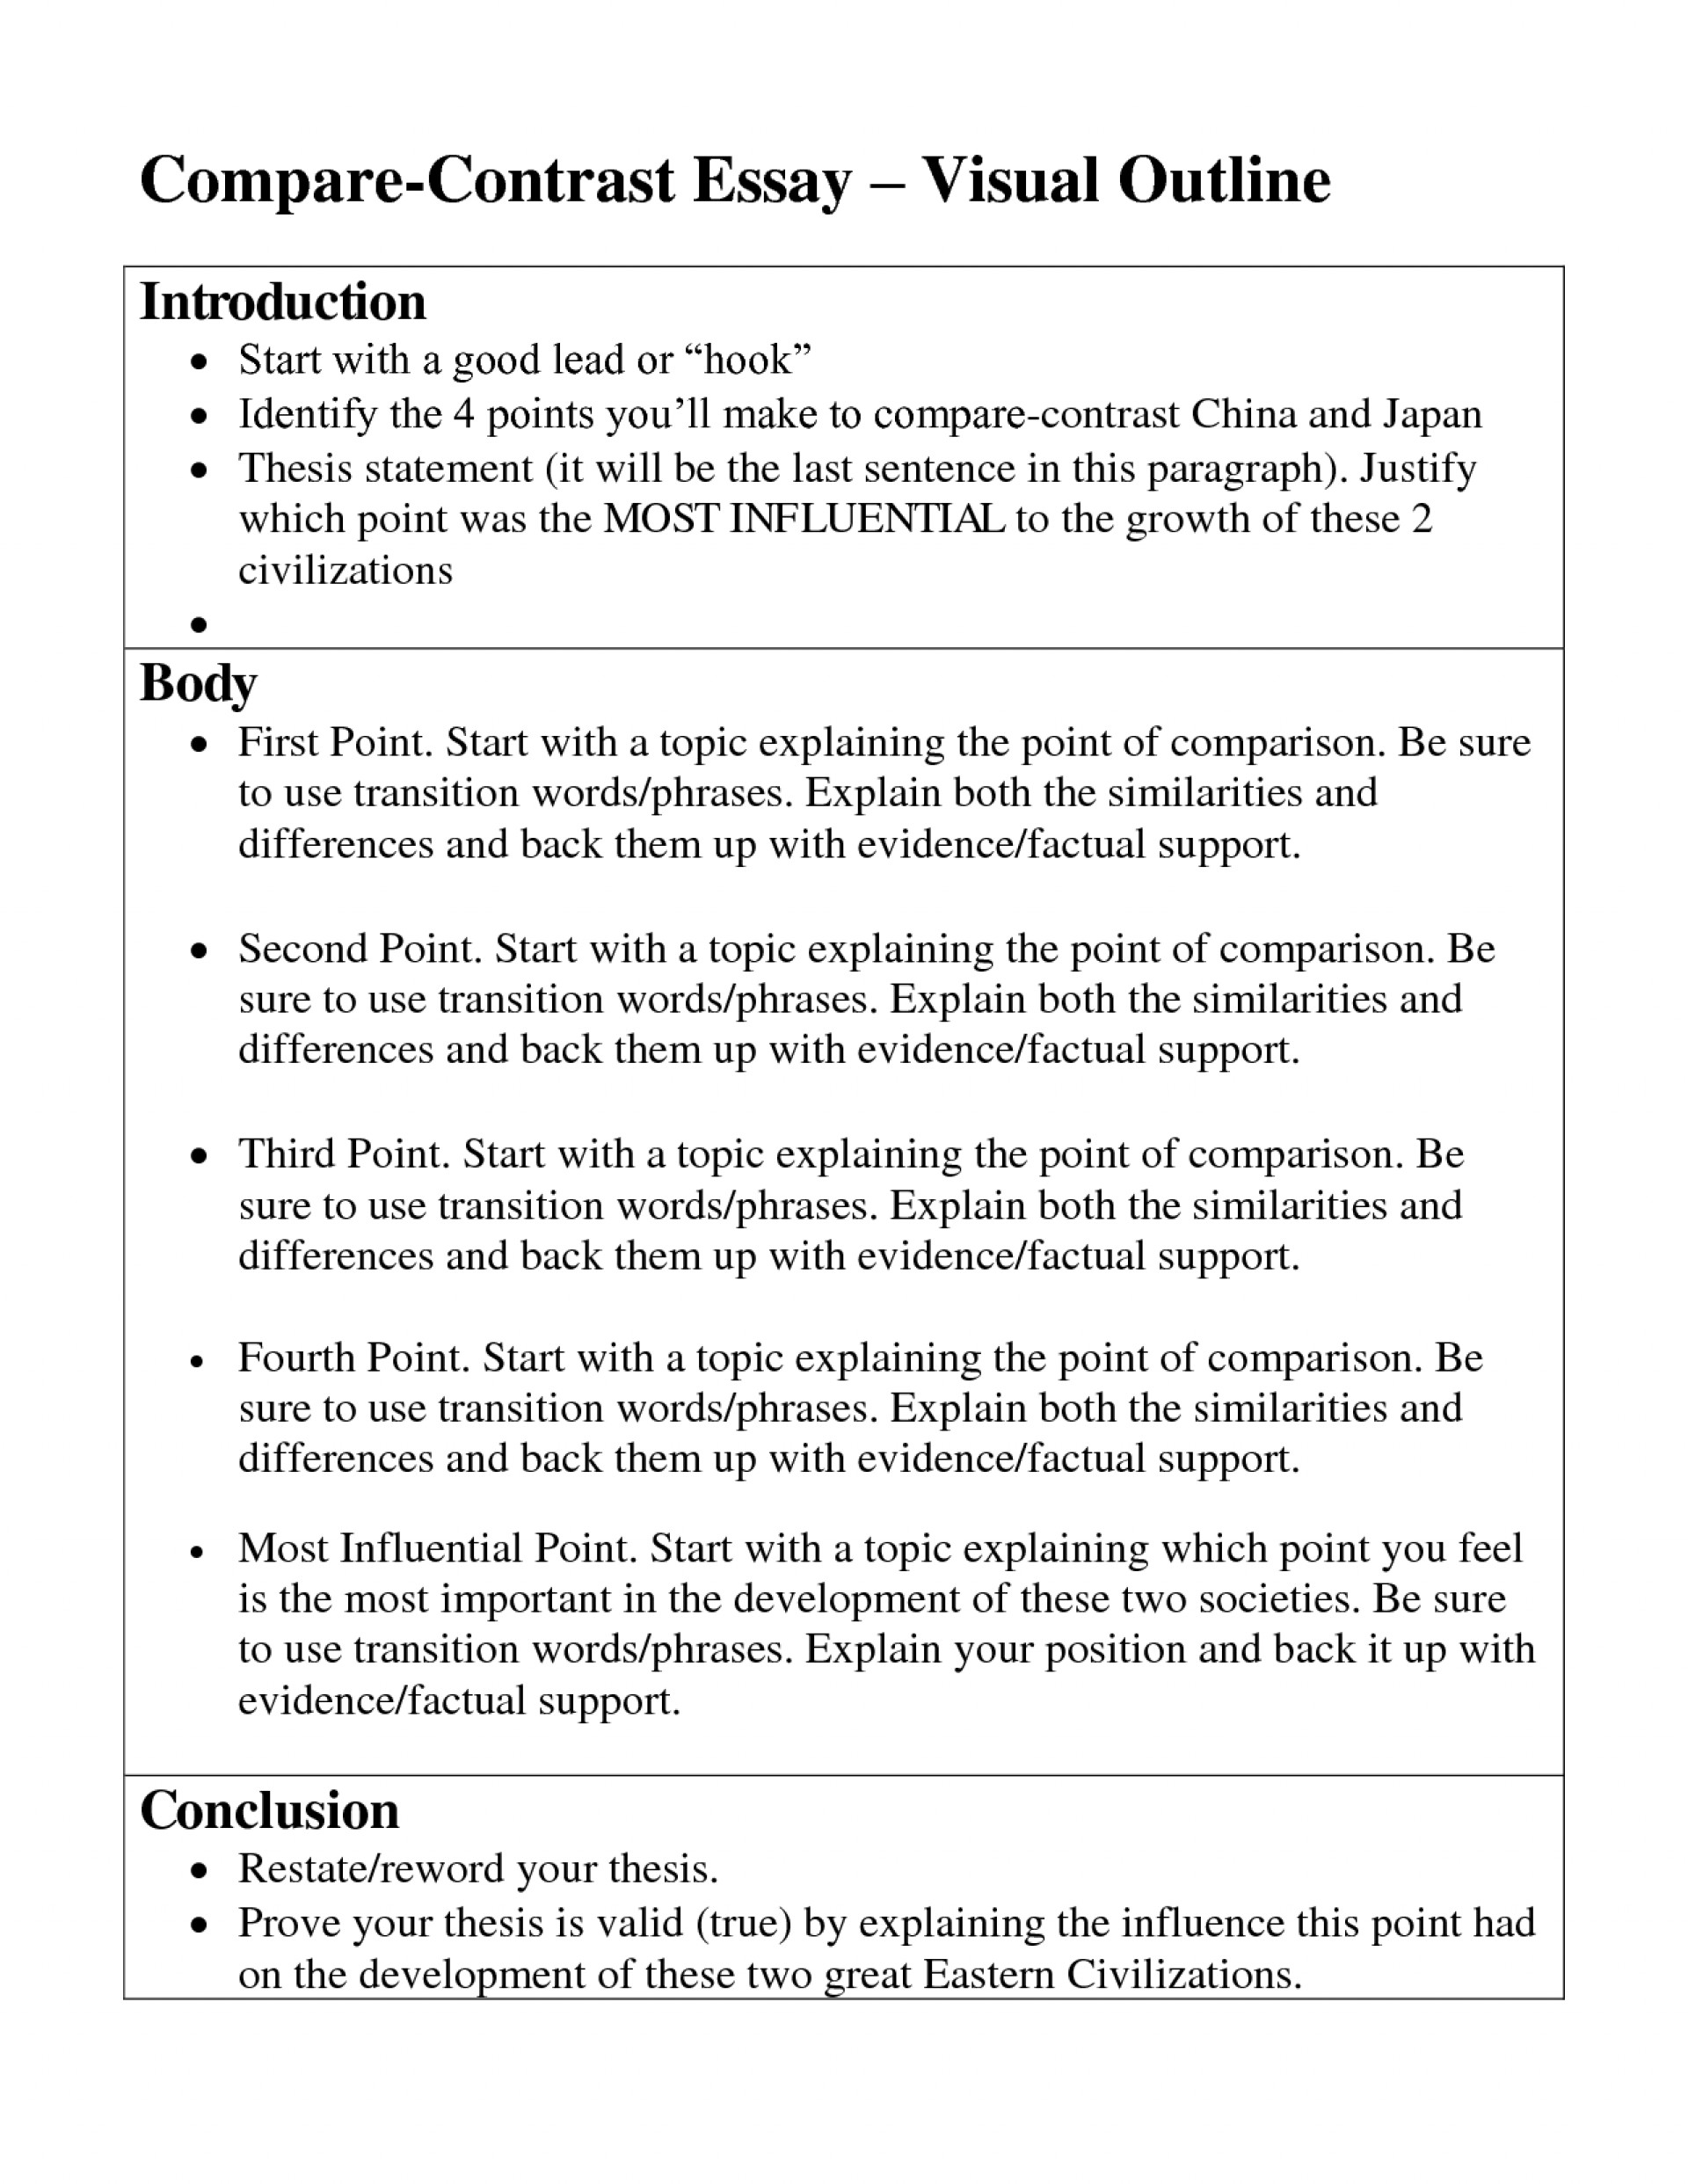 017 Compare And Contrast Essay Frightening Outline Block Method Ideas High School Template For Middle 1920